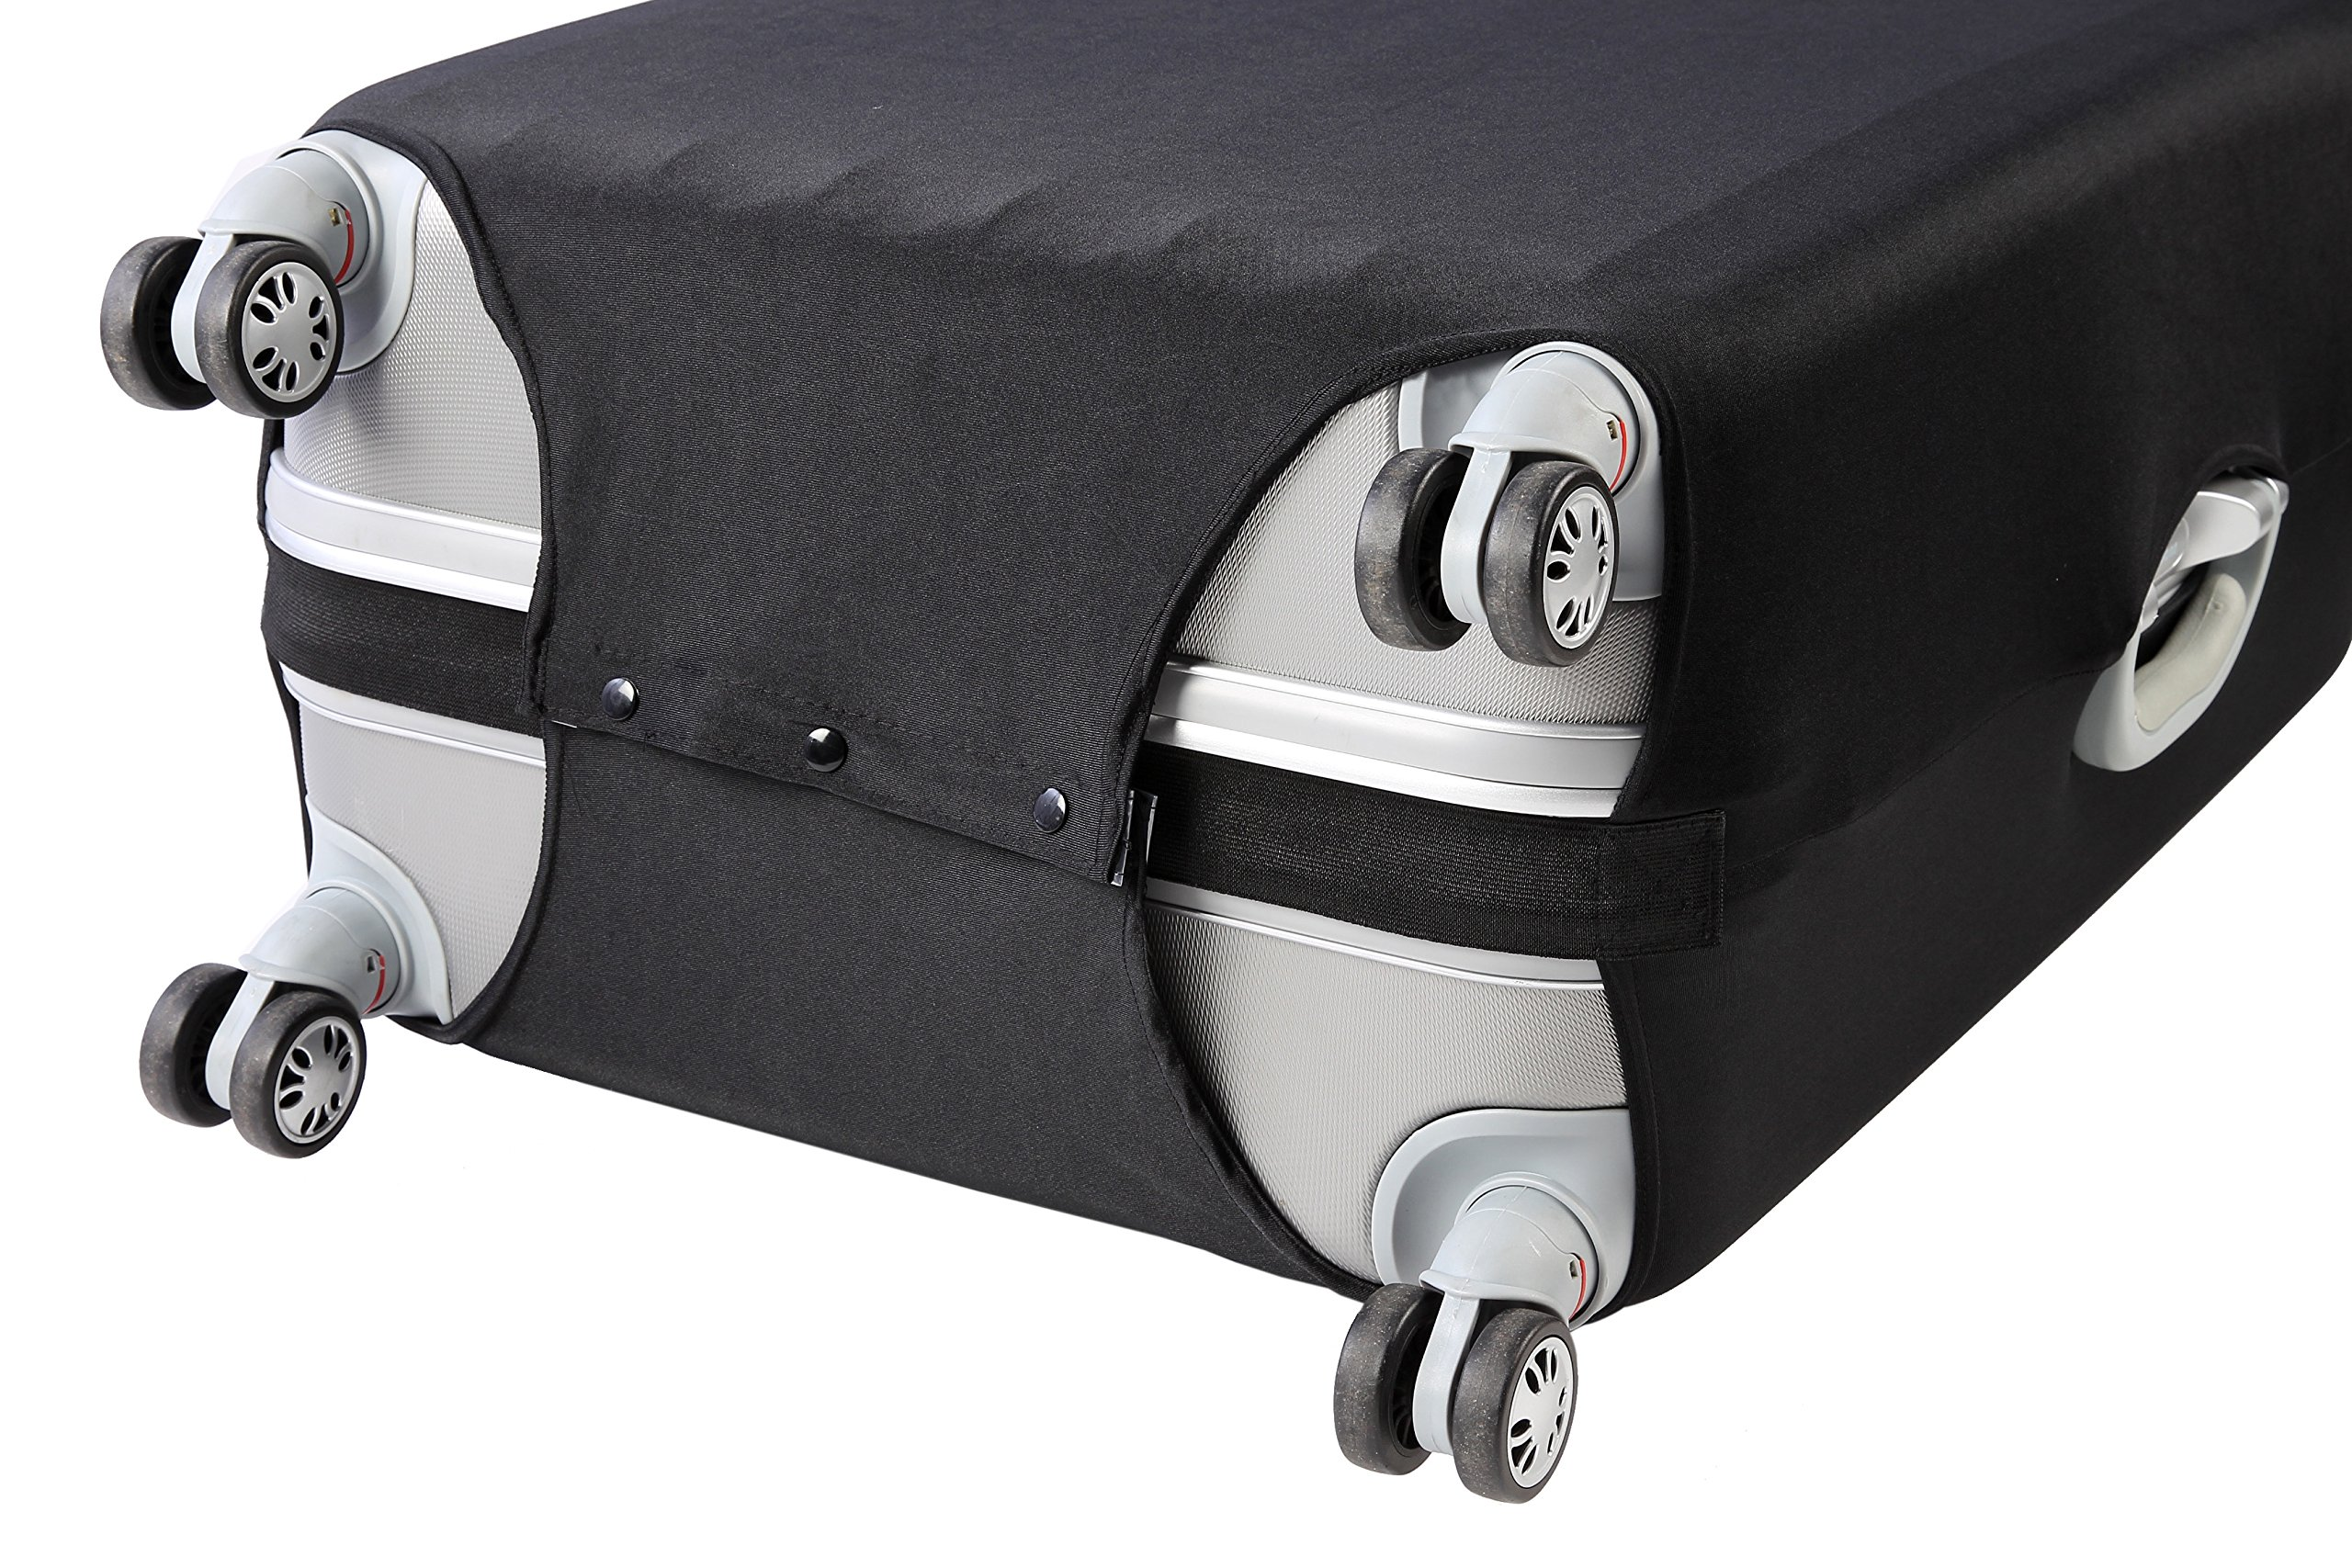 Travel Luggage Protective Cover - Stretchable Suitcase Protector Case, Black, 26 Inches by Juvale (Image #9)